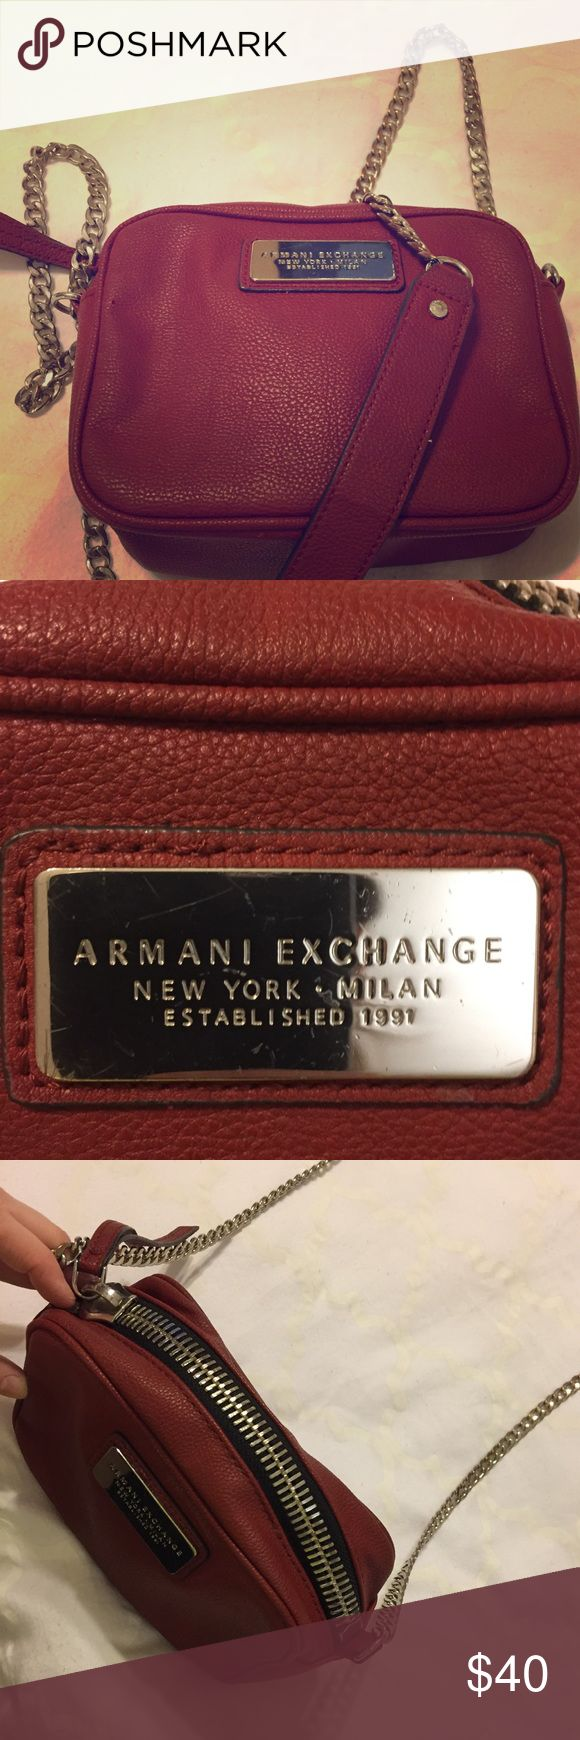 Armani Exchange Red Chain Purse I'm beautiful condition! It's a staple to have in your closet. Armani Exchange Bags Crossbody Bags